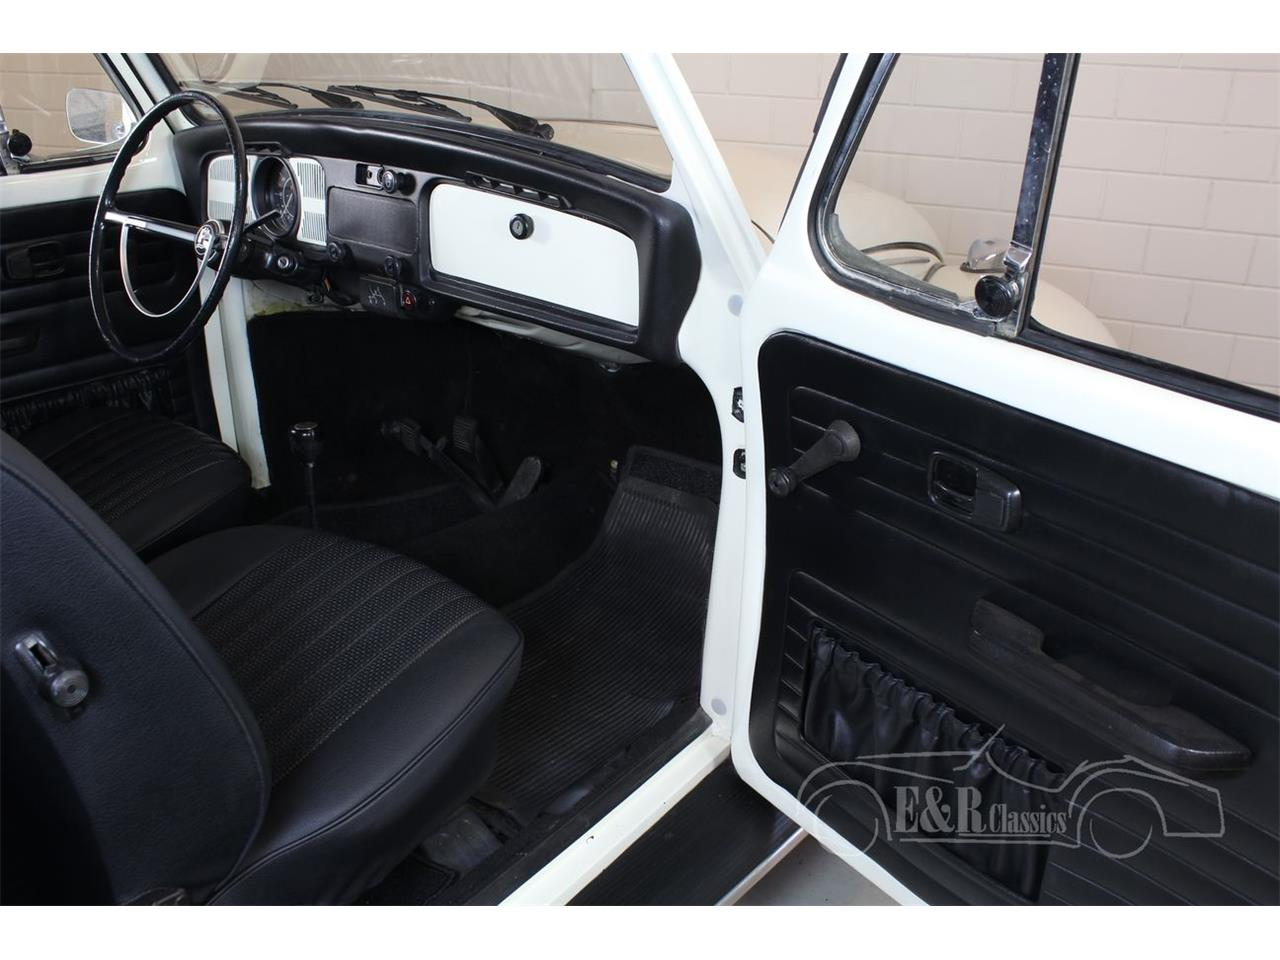 Large Picture of '73 Volkswagen Beetle - $13,500.00 Offered by E & R Classics - QJ2U